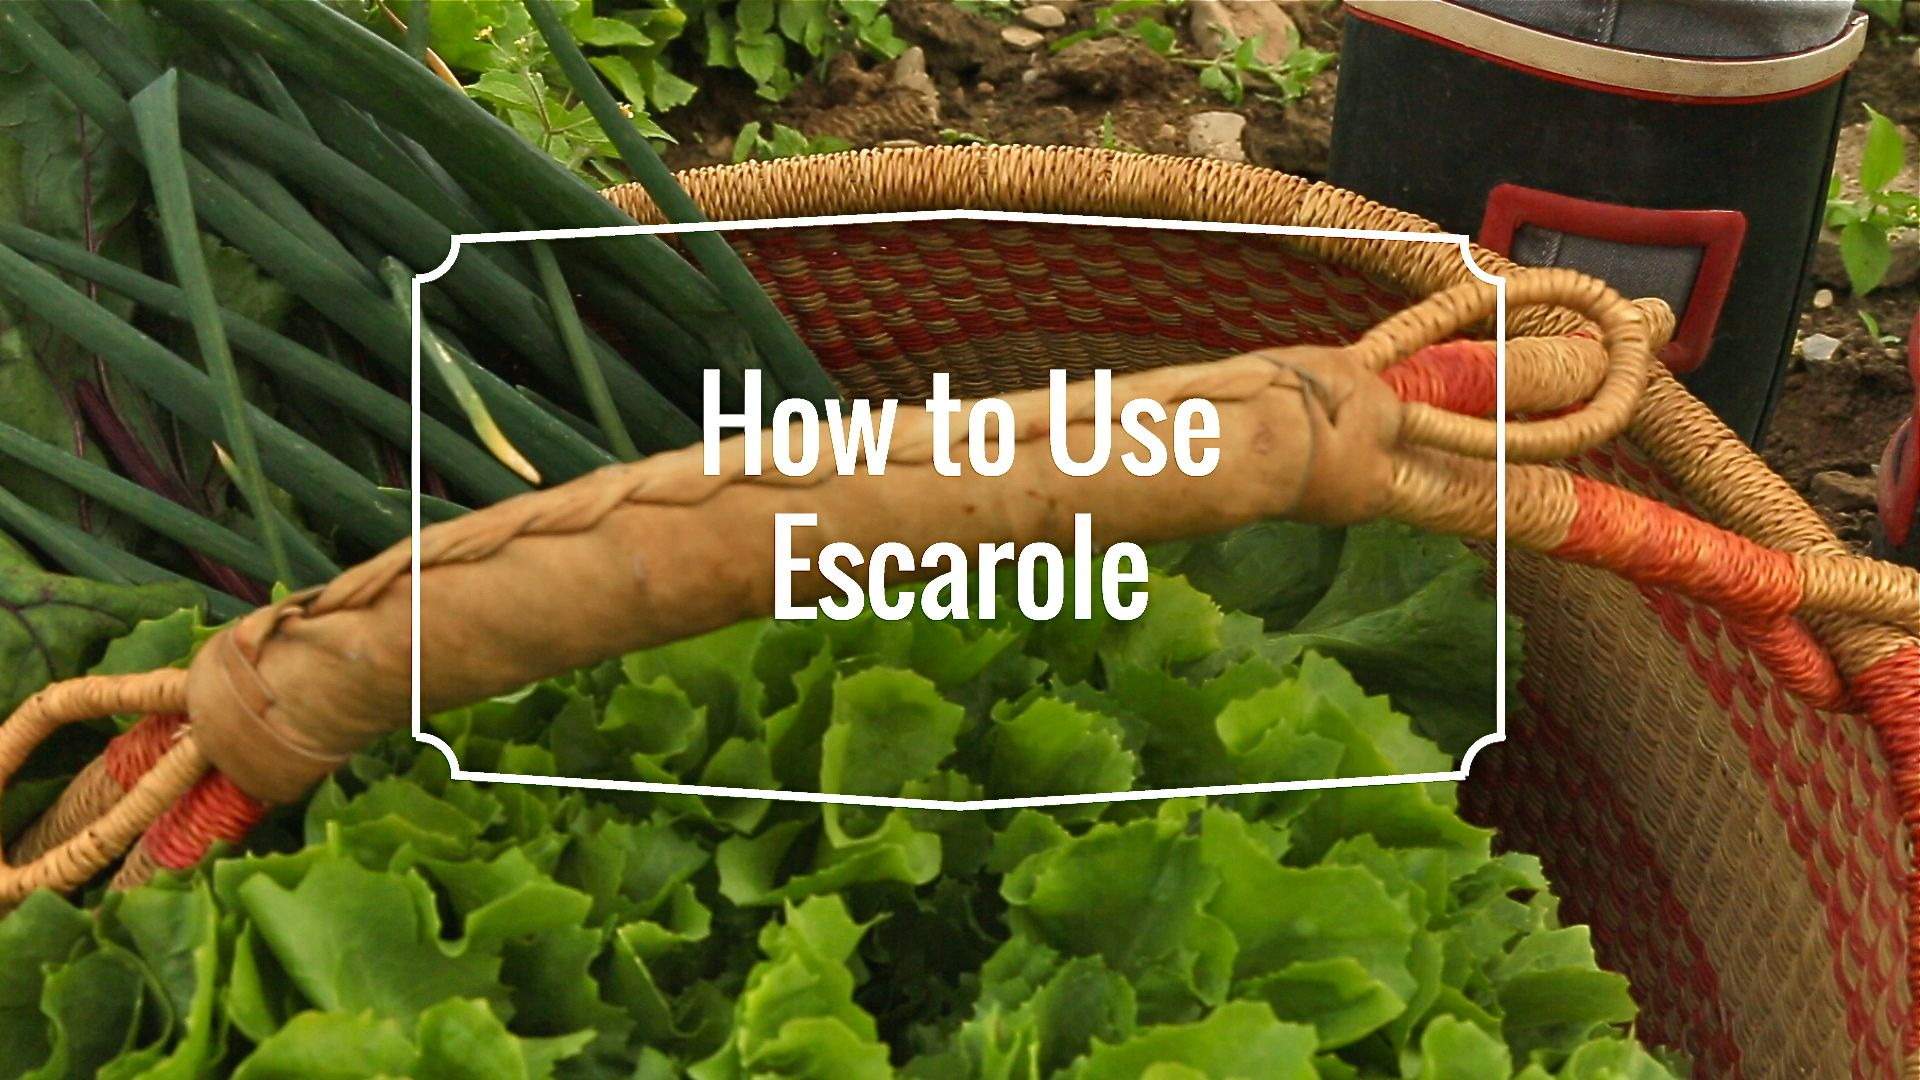 How to use Escarole